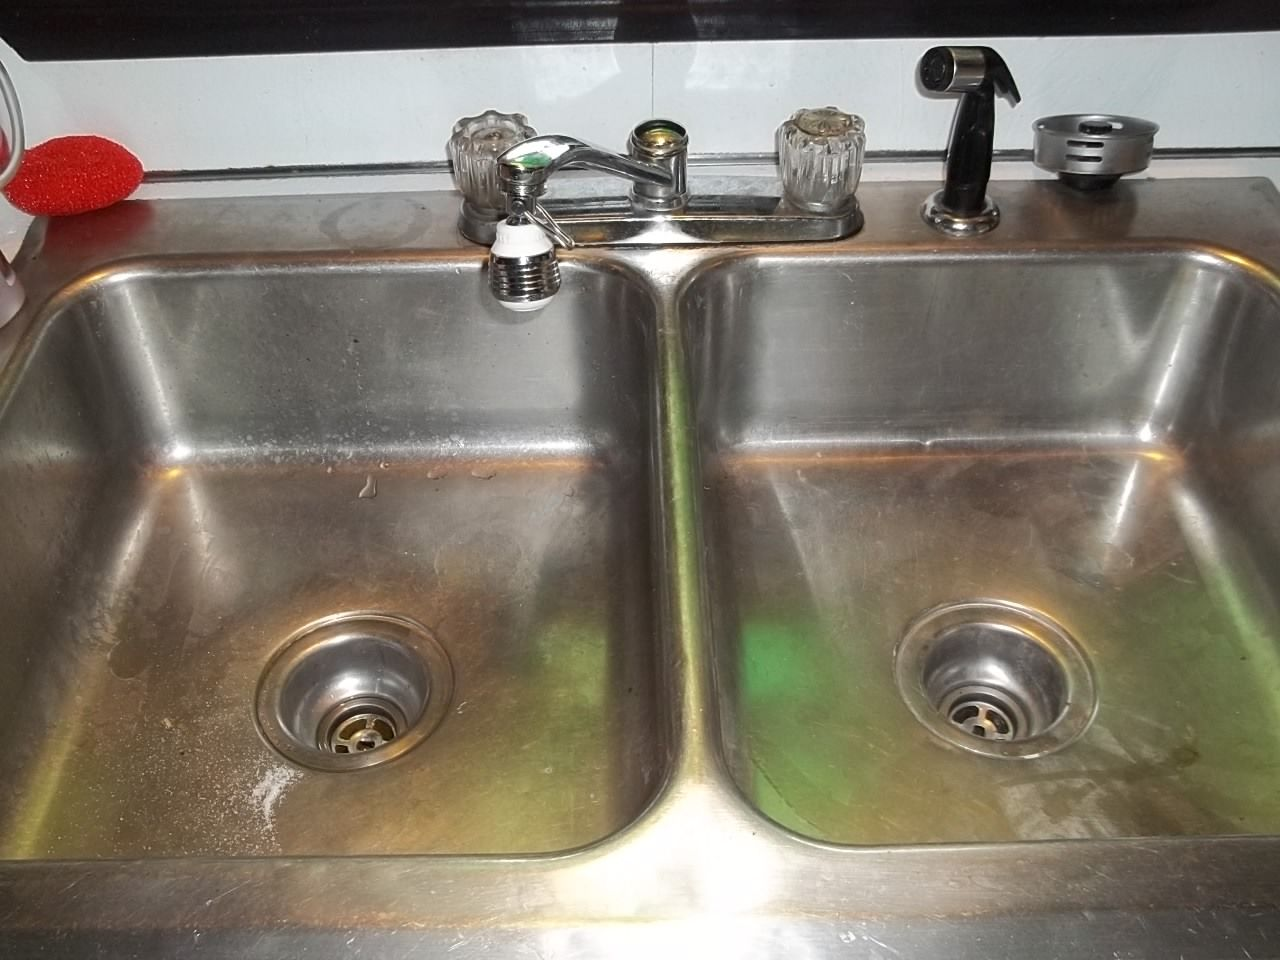 what is the best way to unclog a kitchen sink remodel ideas for small kitchens 25 43 unclogging on pinterest